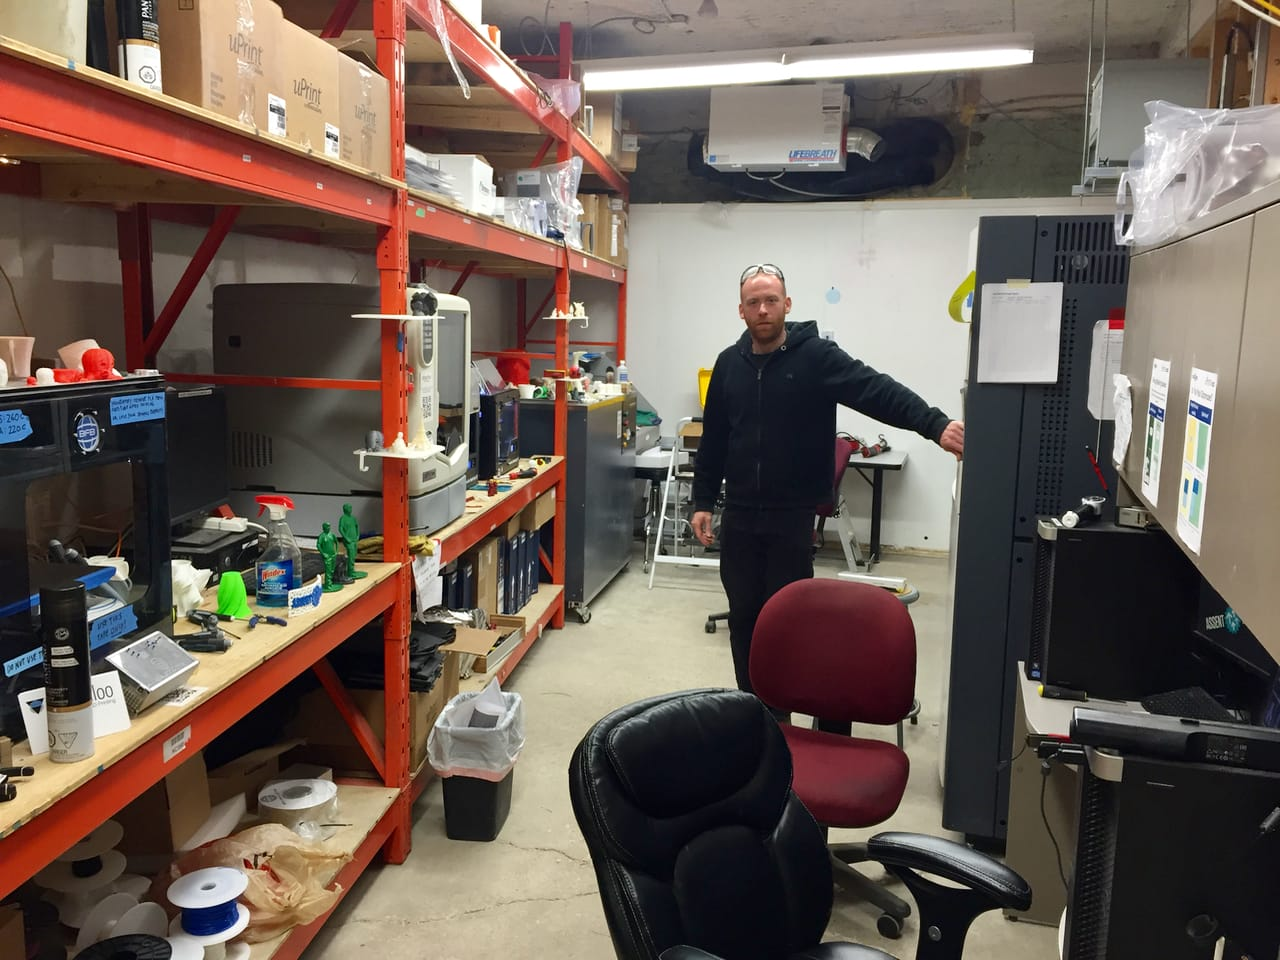 The Challenges of 3D Printers in a Makerspace